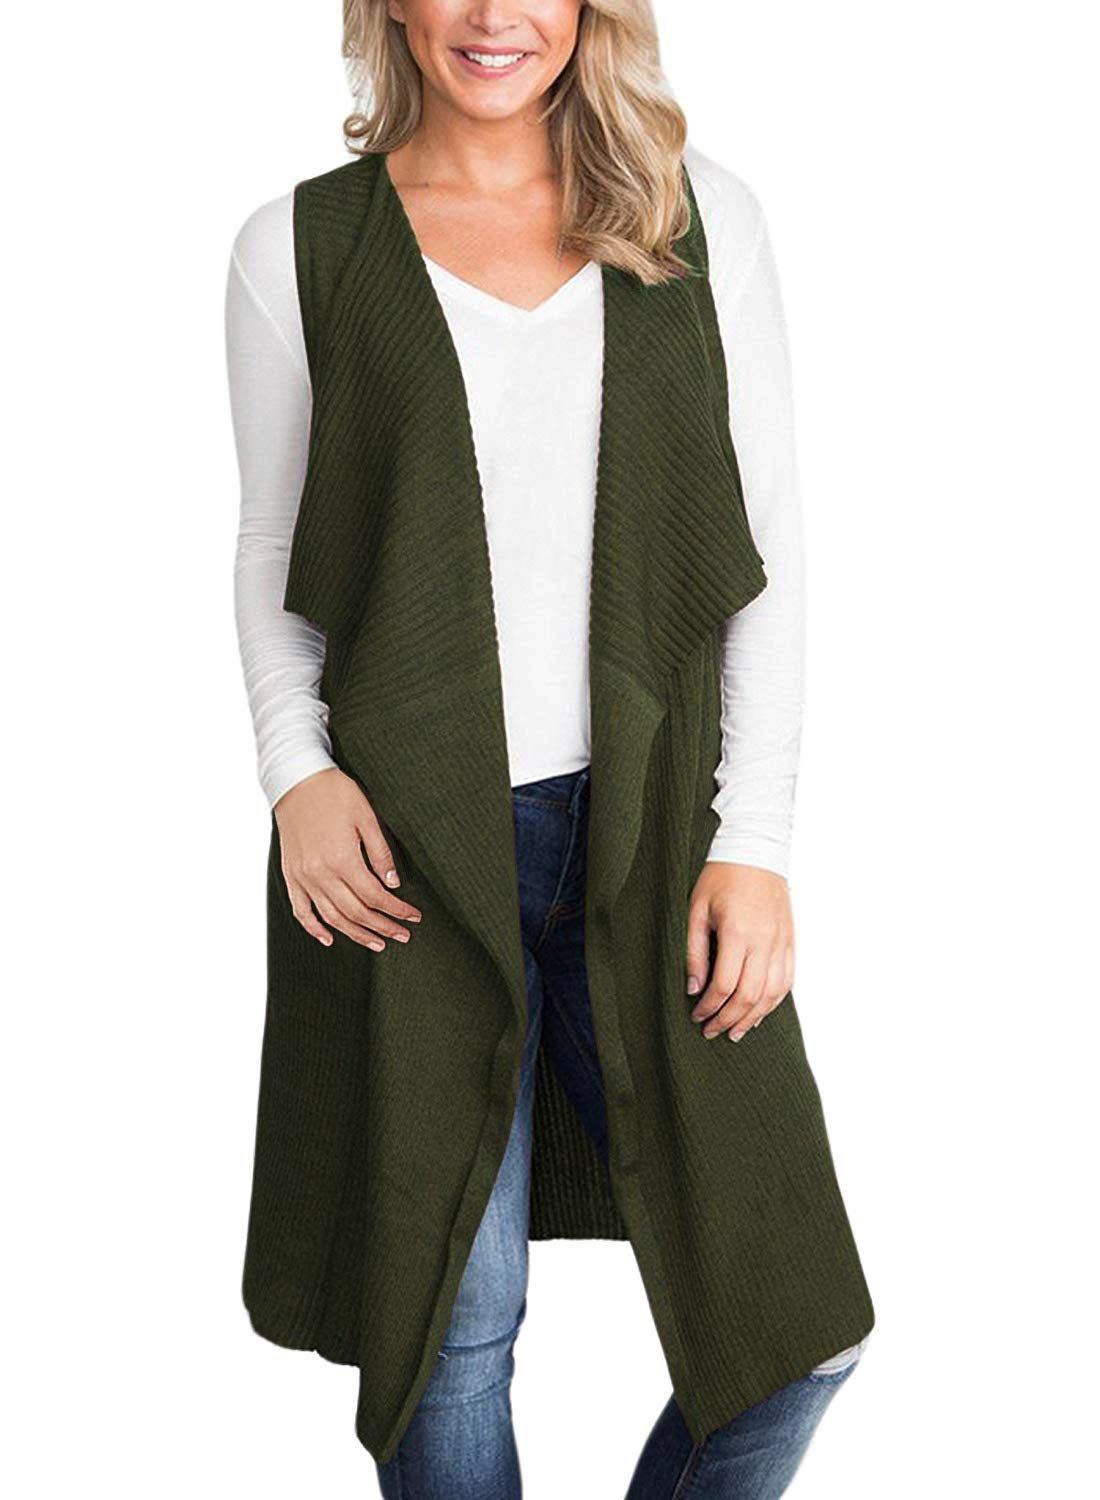 BBX Lephsnt Women Sleeveless Cardigan Open Front Knitted Long Sweater Vest